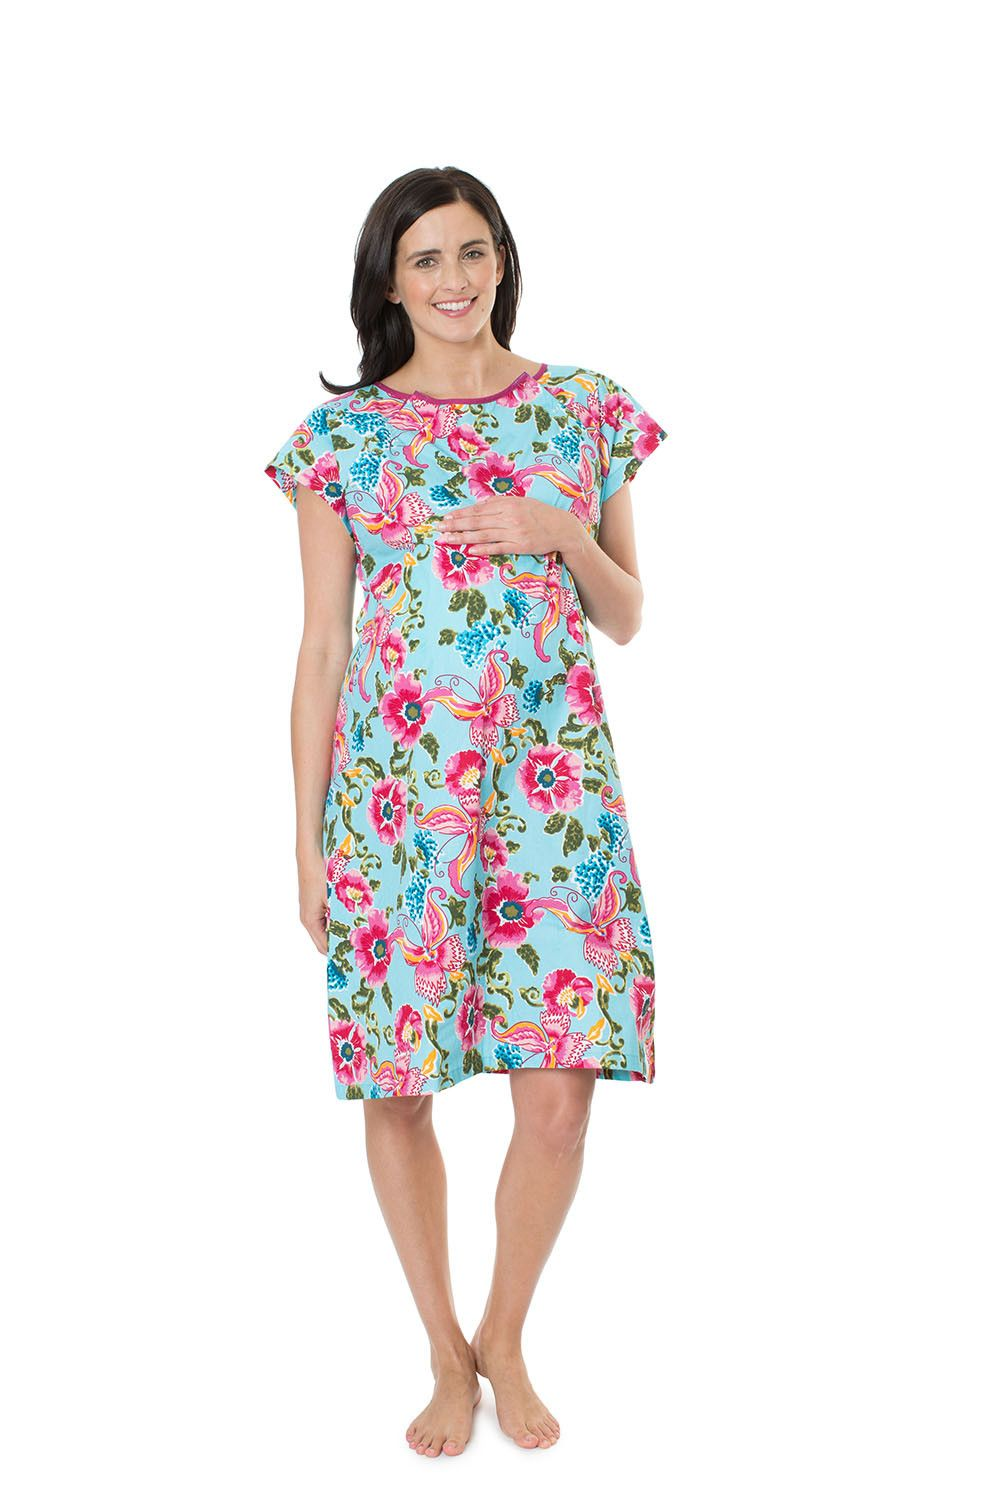 0efe275ba73 Isabelle Gownie maternity delivery and labor gown.Pack it in your hospital  bag with matching maternity and nursing nightwear